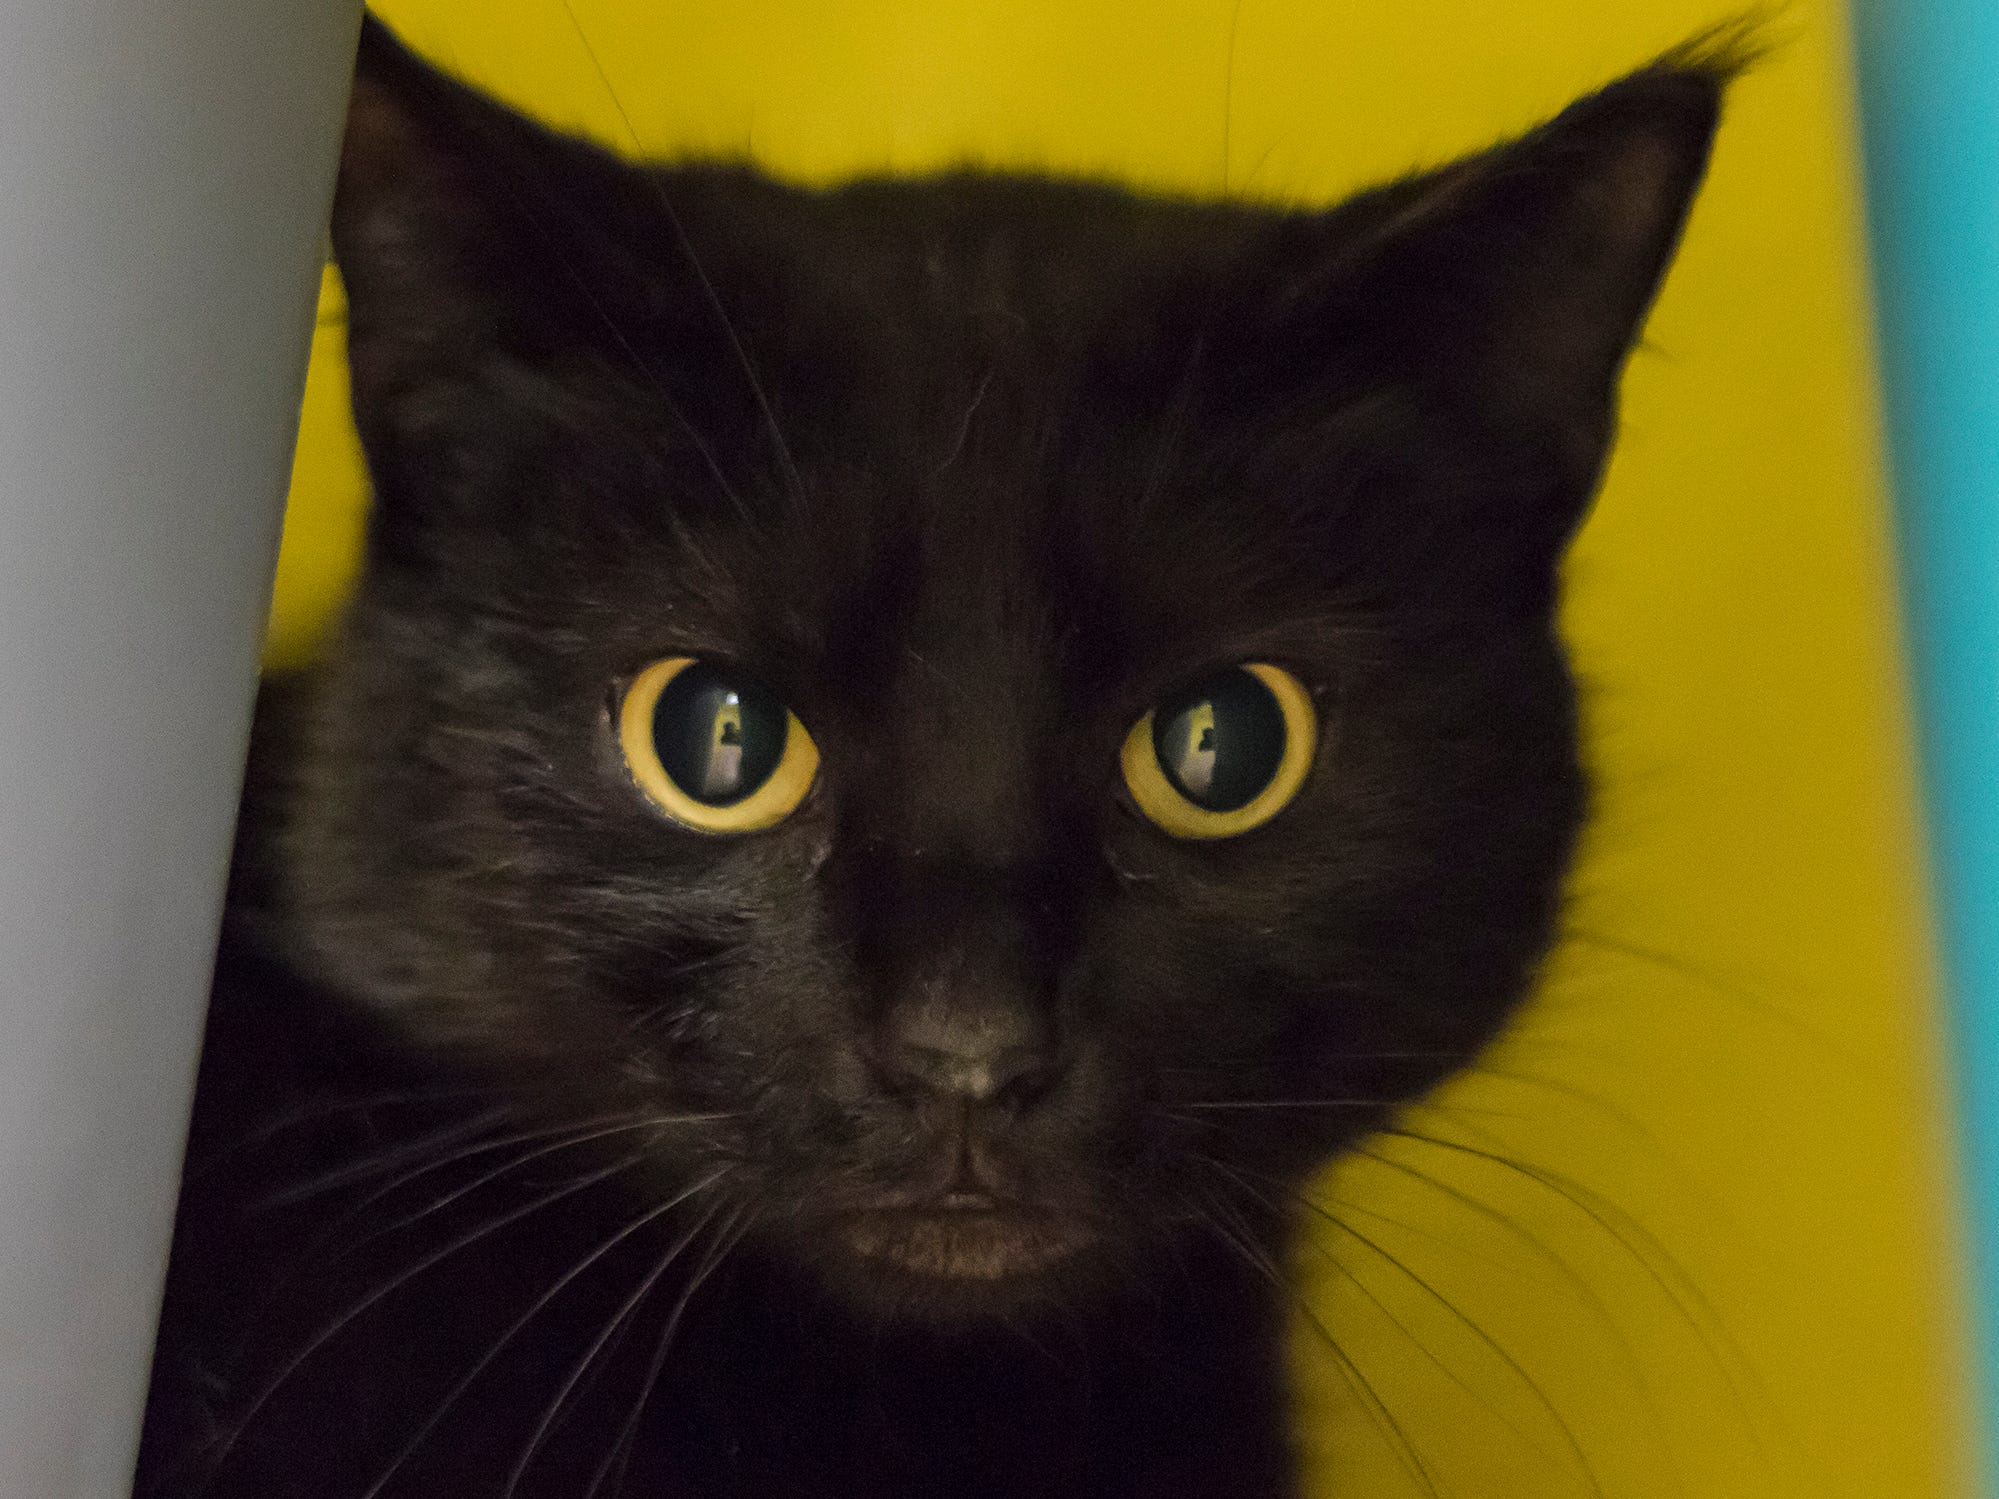 A variety of cats are available for adoption at the River Cities Humane Society for Cats in Monroe, La. For the month of February adoptions will cost $60 for all available cats.